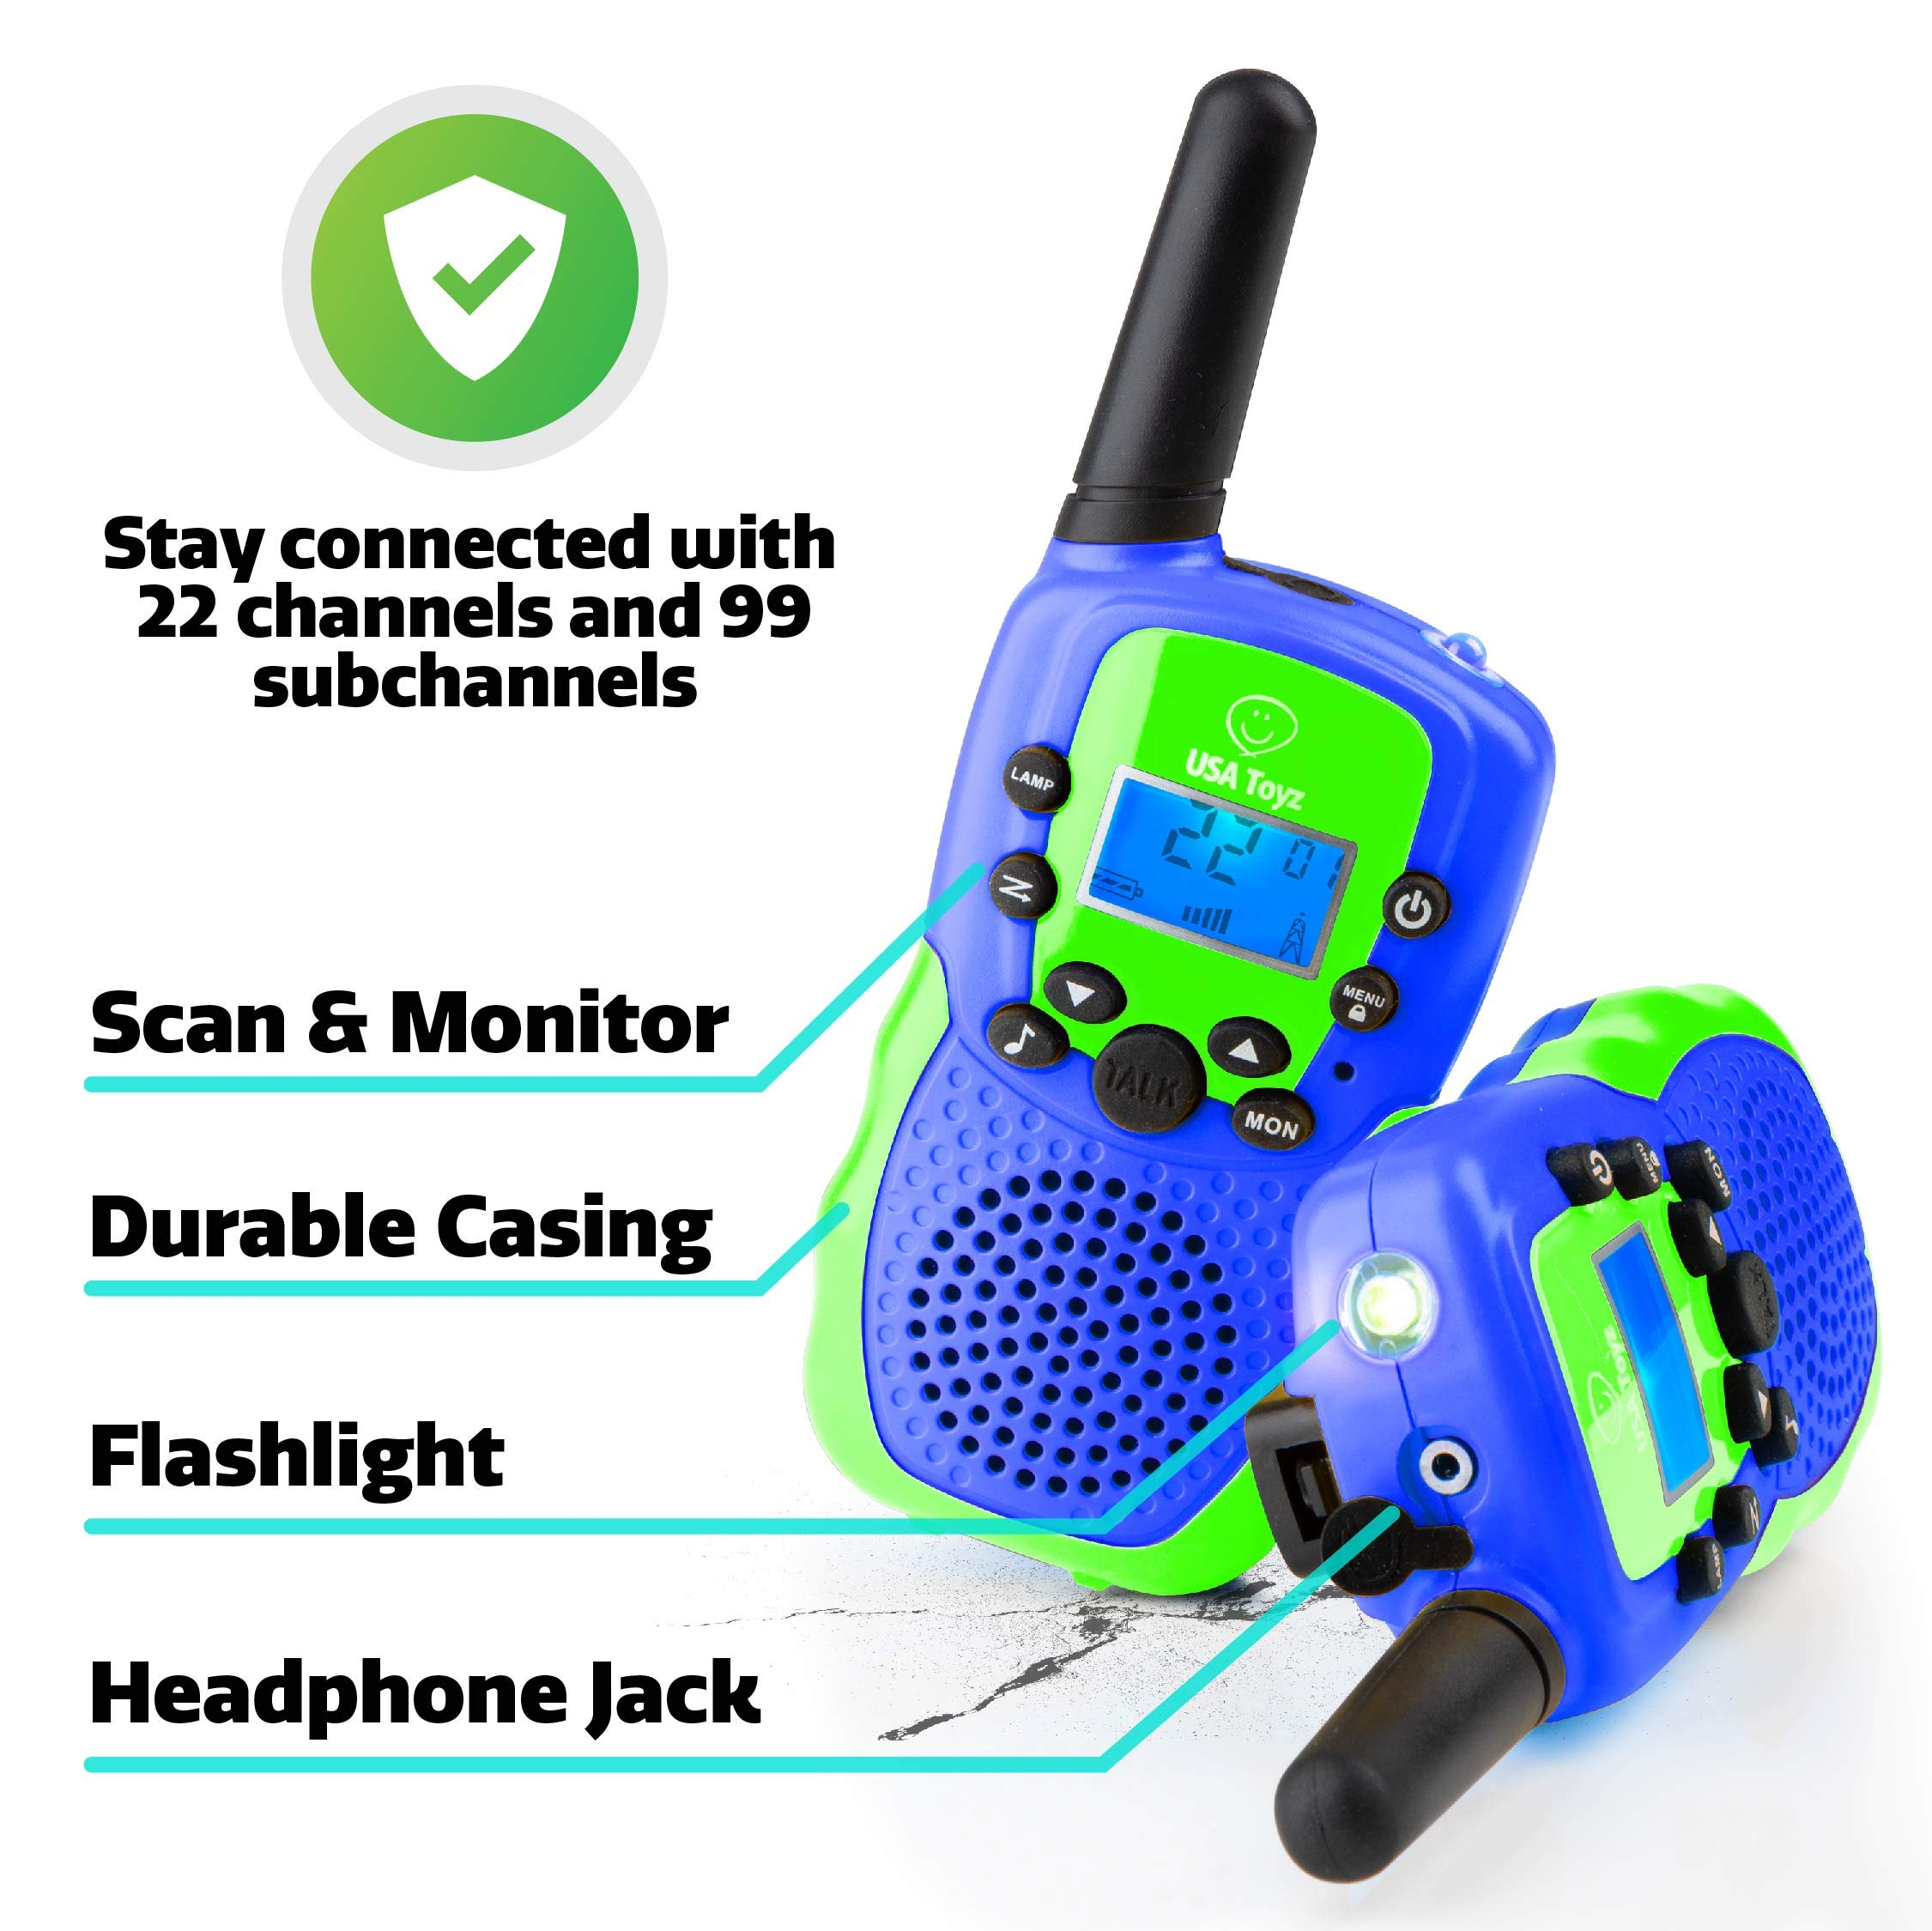 USA Toyz Walkie Talkies for Kids Vox Box Kids Walkie Talkies for Boys Or Girls, Voice Activated Long Range Outdoor Toys Walkie Talkie Set (Blue/Green) by USA Toyz (Image #5)